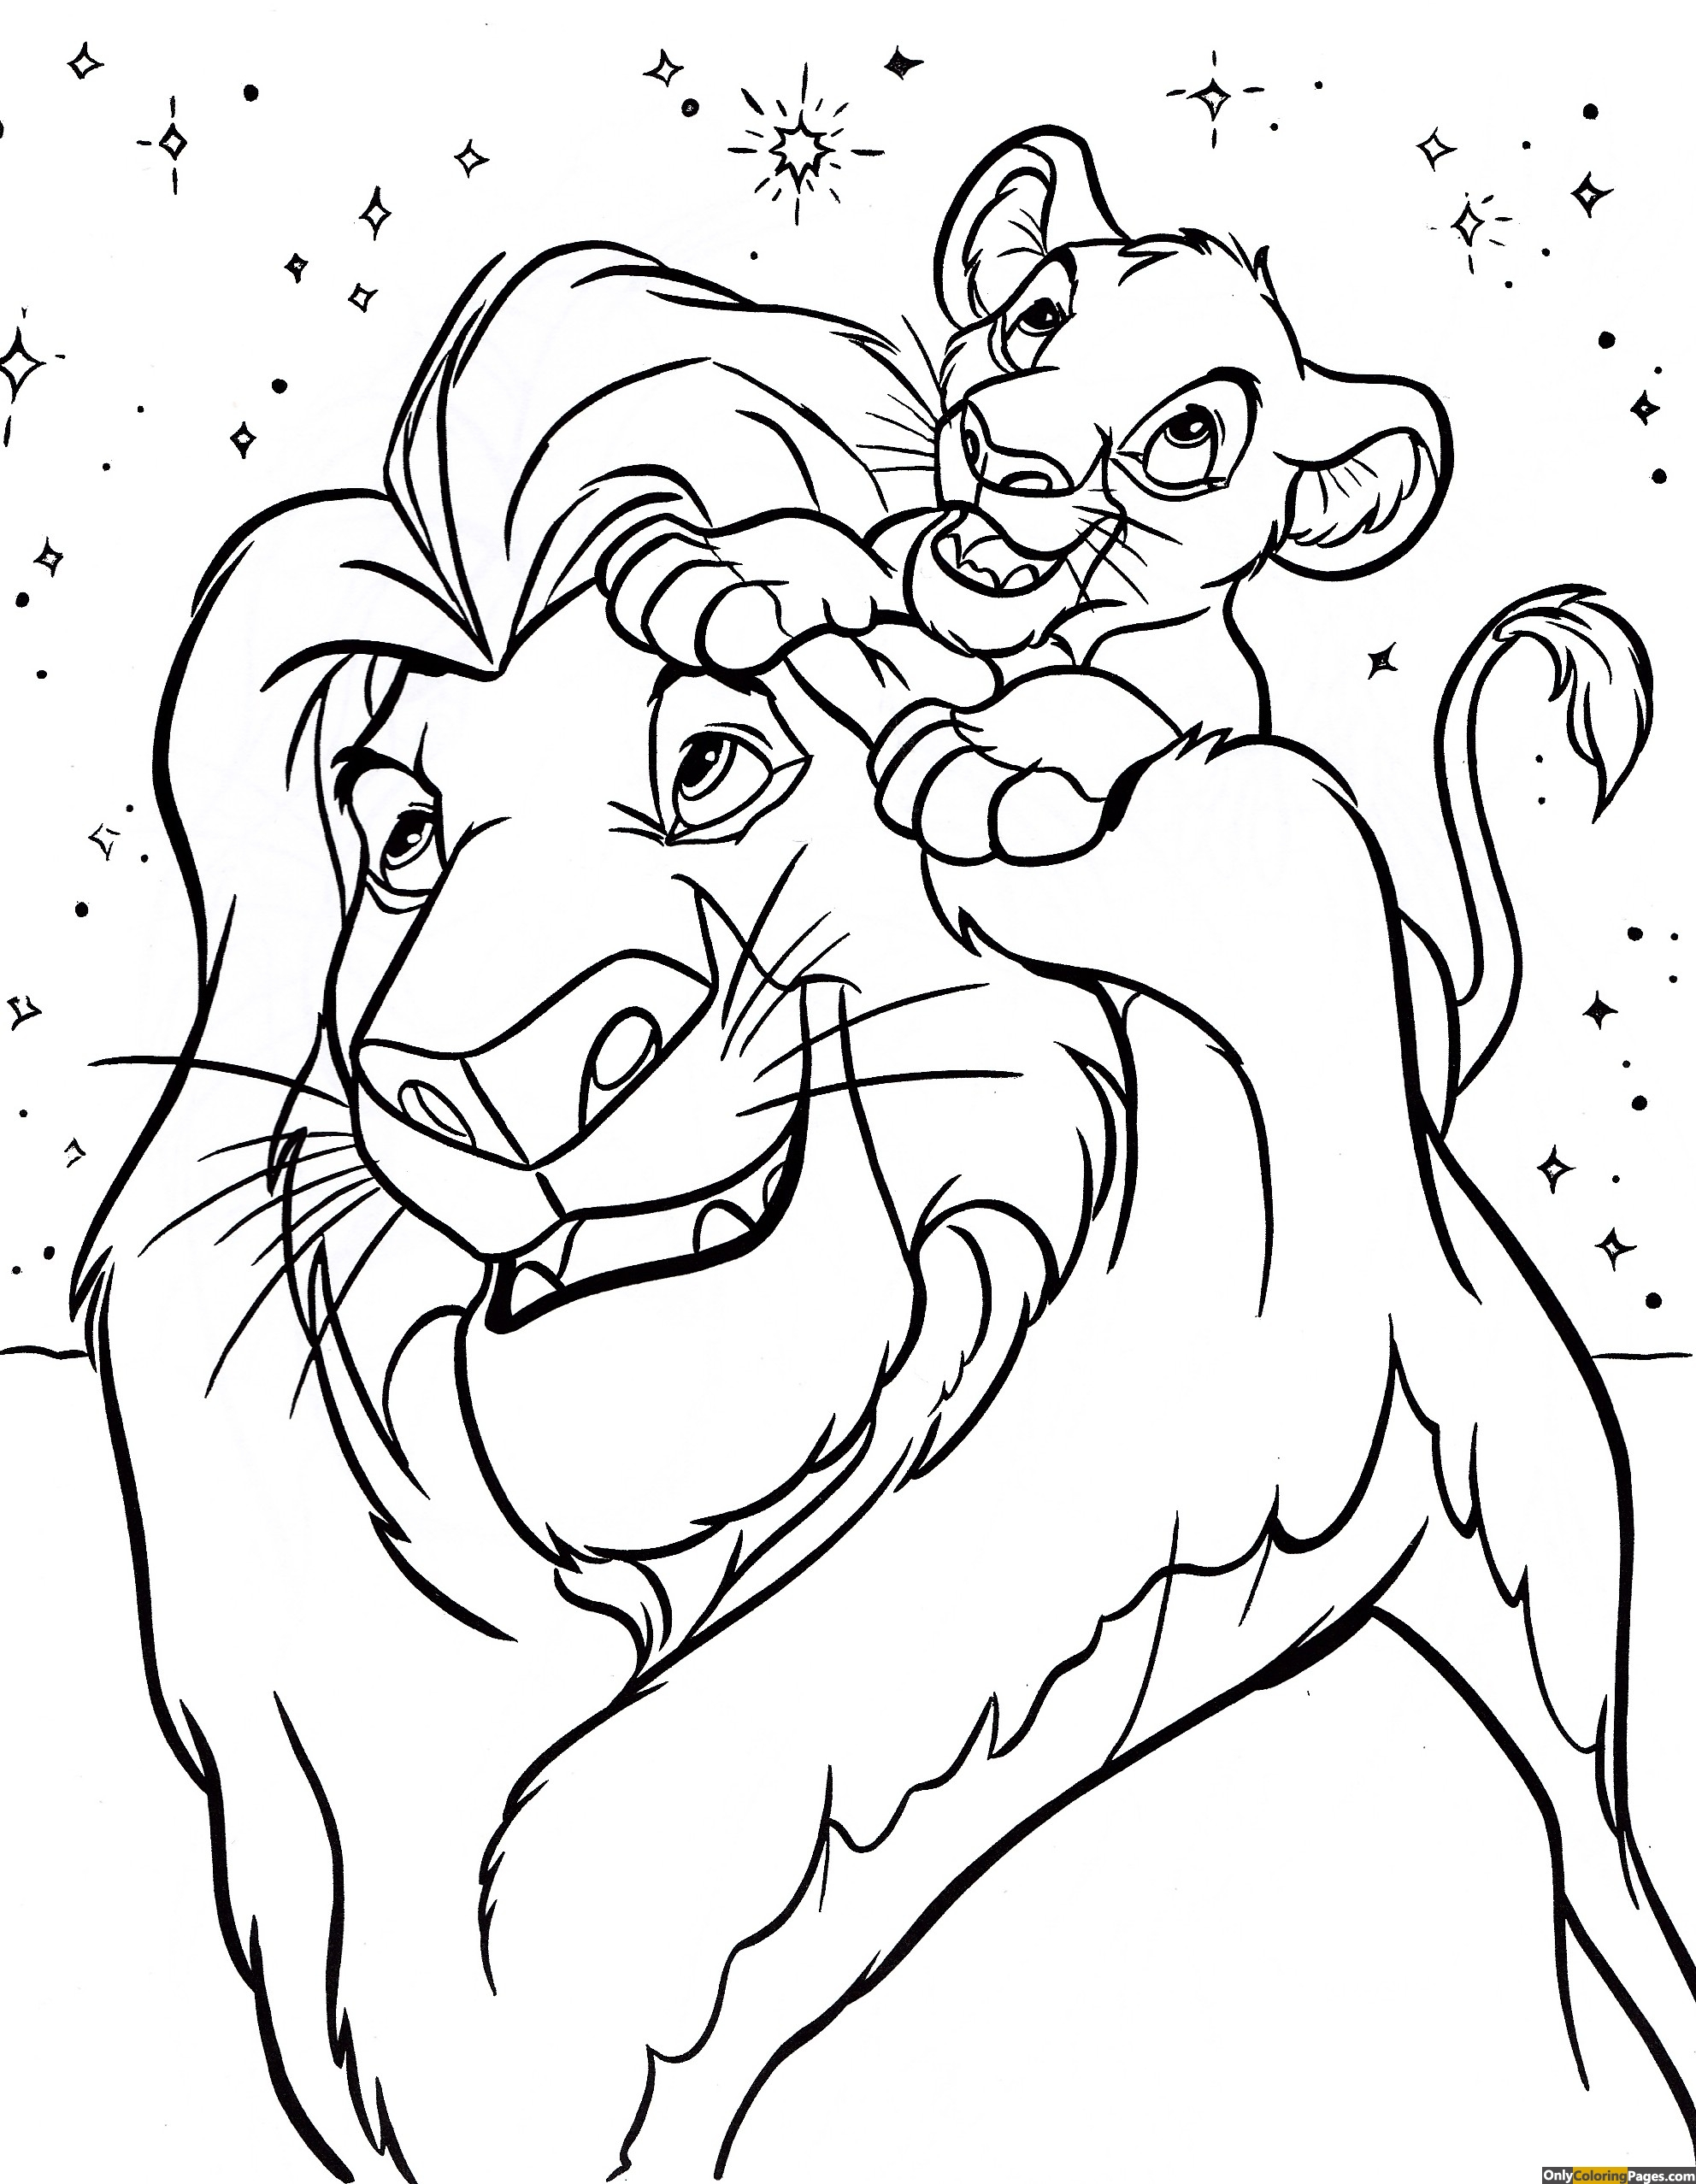 Disney_Coloring_Pages_Lion_King_01